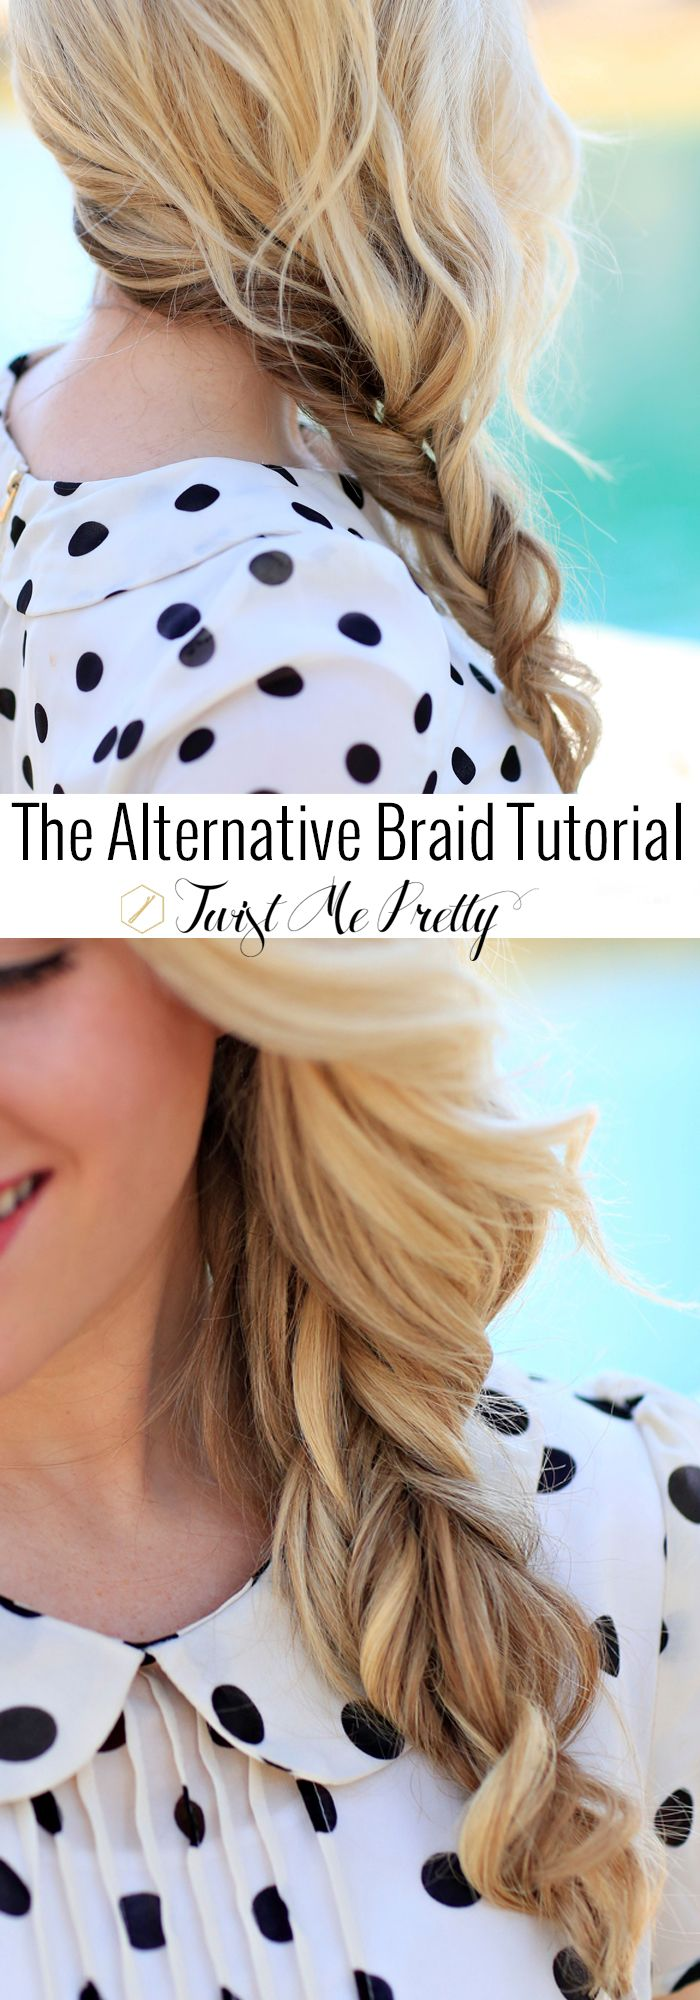 Learning this braid for summer is a must!  It's two sections twisted together -- I've never seen anything like it.  It holds shorter layers and looks so gorgeous when fluffed out.  Come checkout the tutorial from Abby at Twist Me Pretty